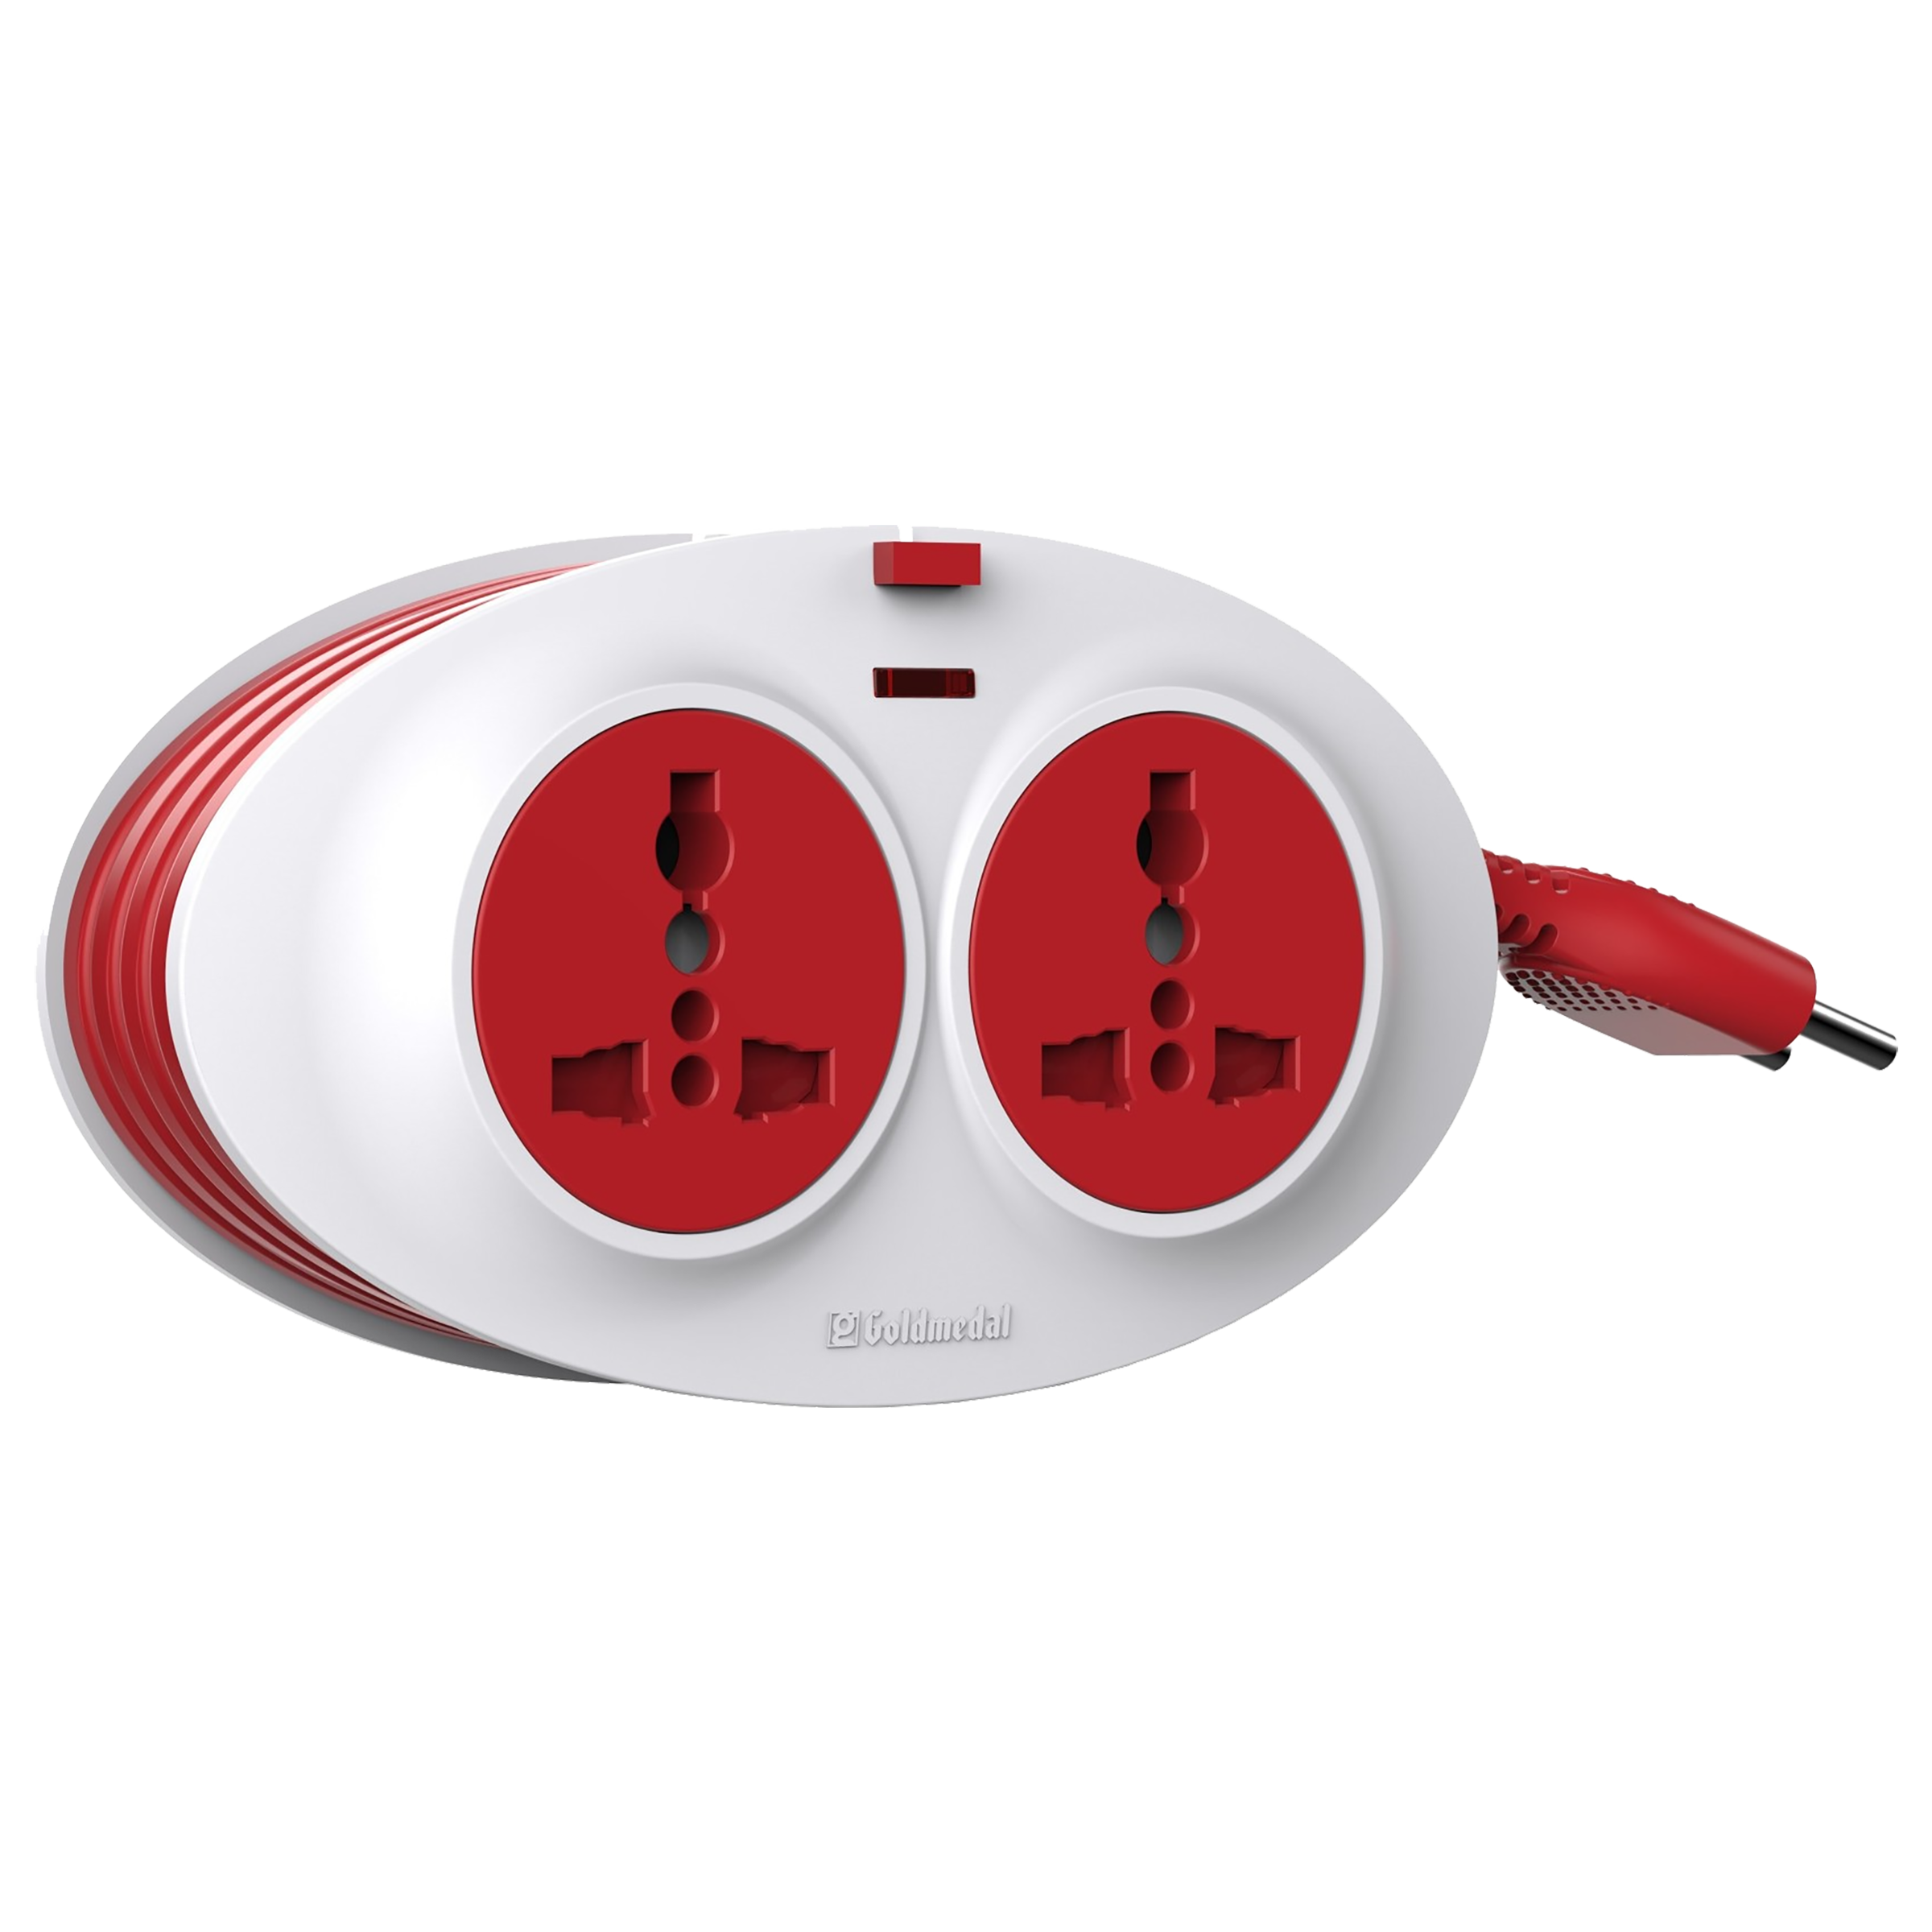 Goldmedal Gio 10 Amp 2 Sockets Extension Board  (2.5 Meters, PVC Enclosure, 205133, White/Red)_1